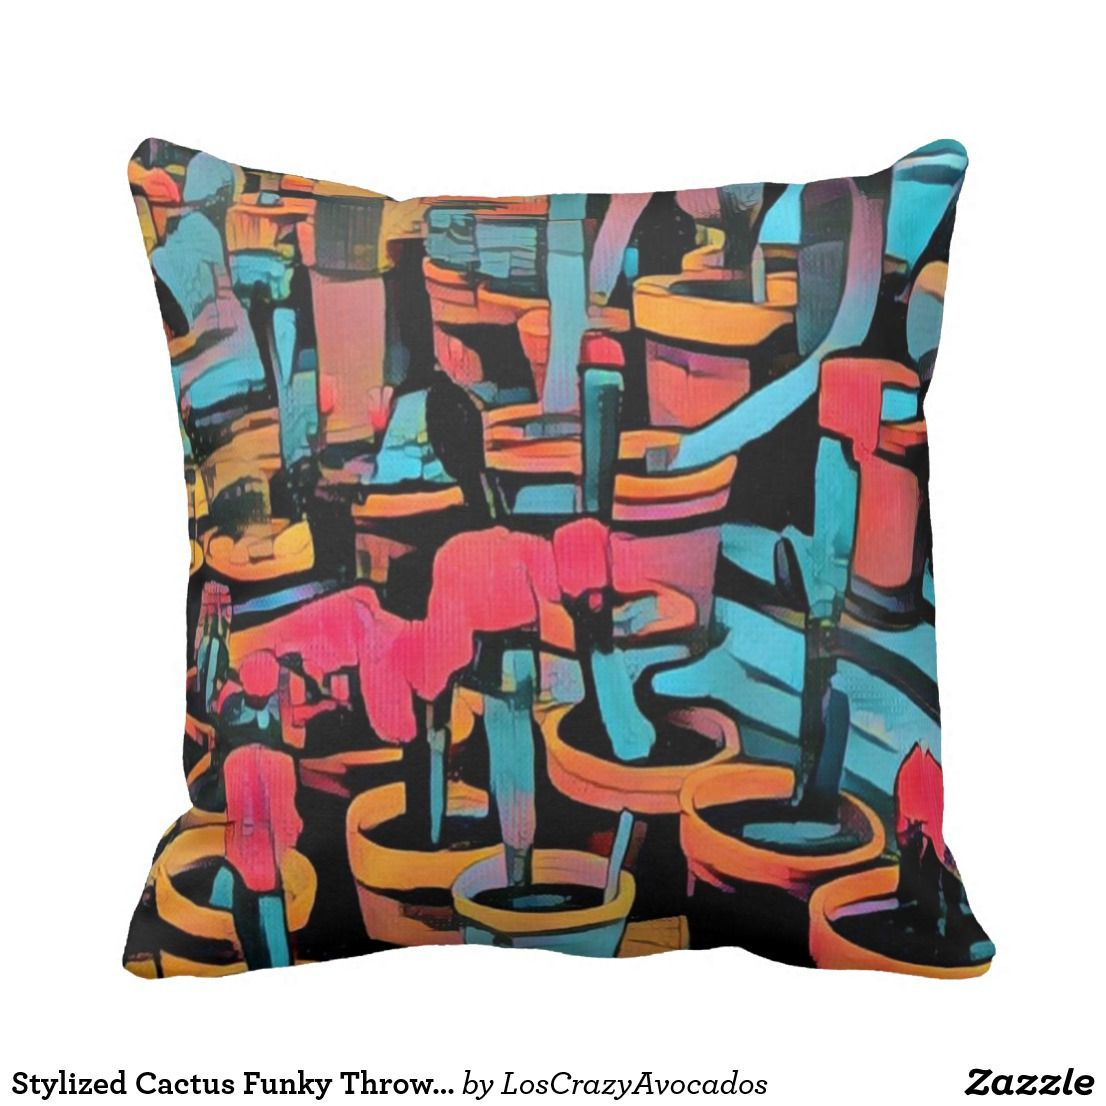 Stylized Cactus Funky Throw Pillow | Home Decor Items | Pinterest ...